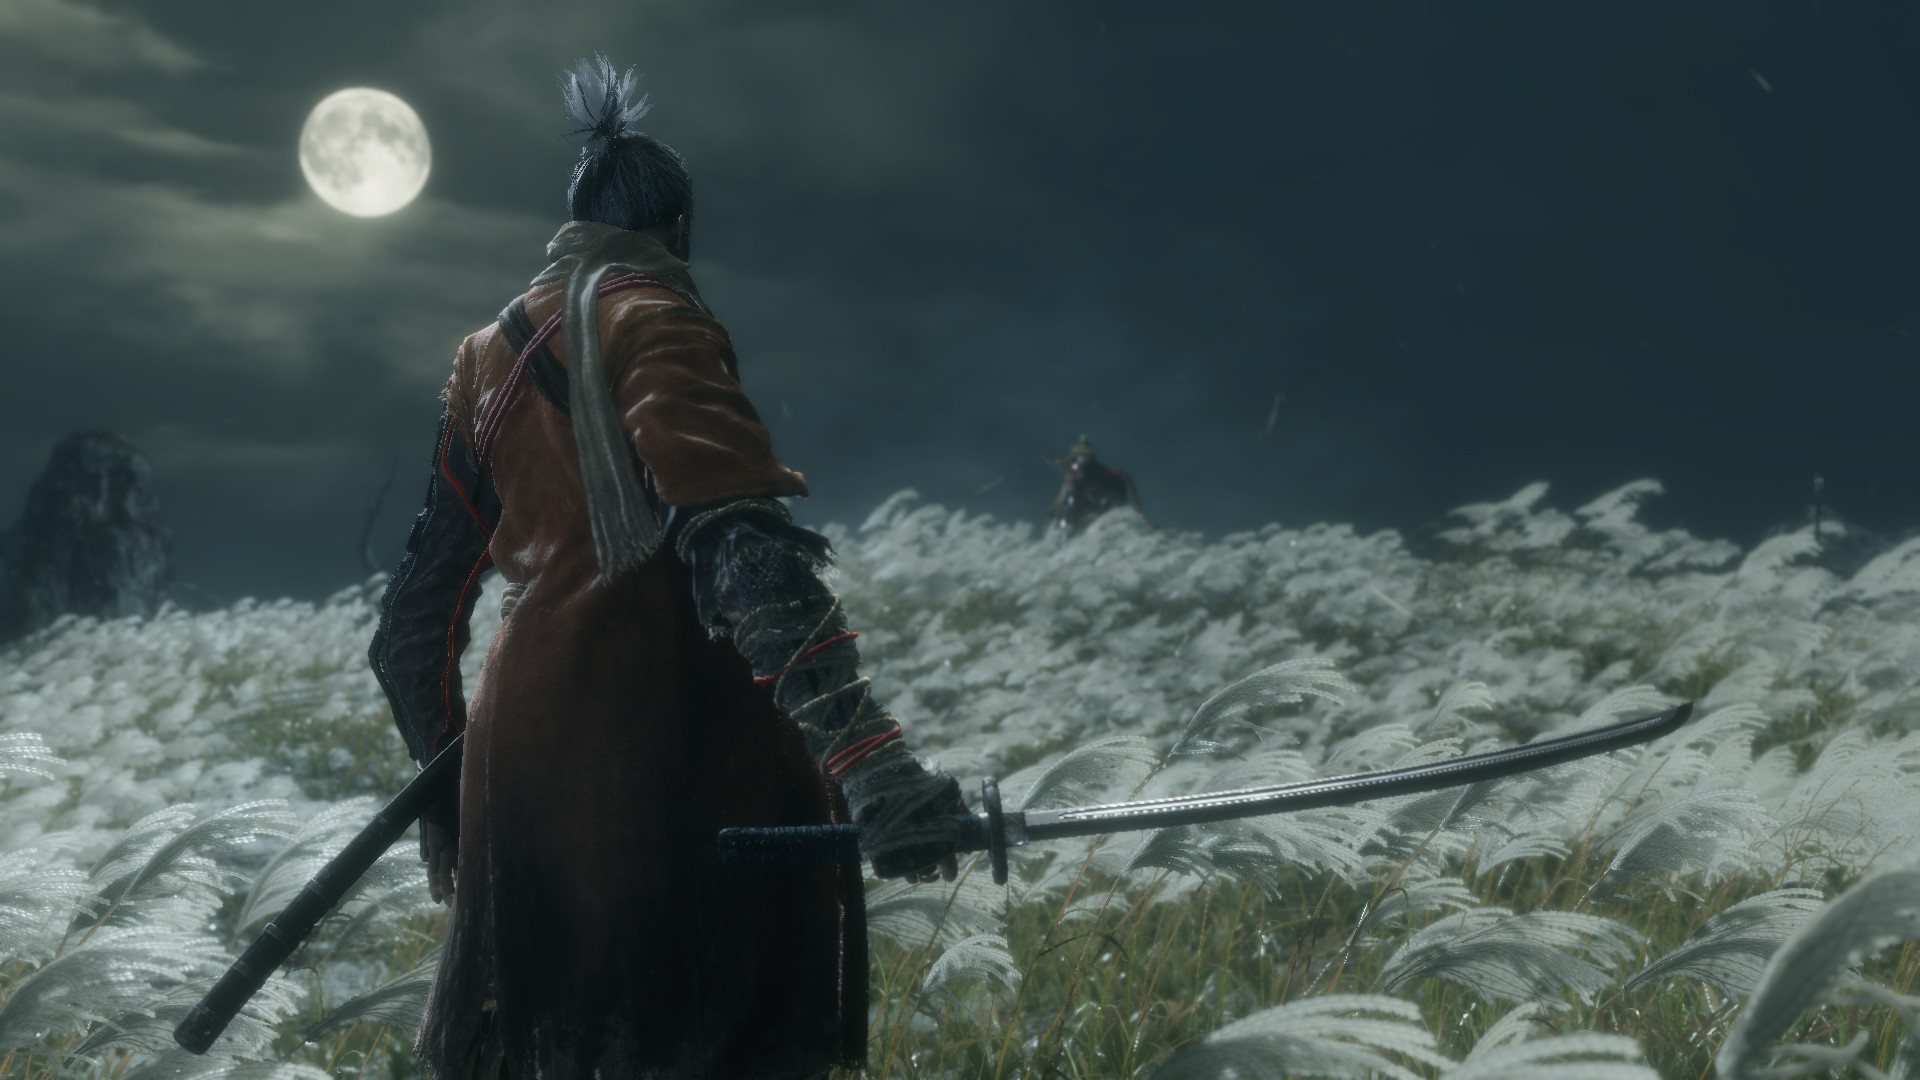 sekiro: shadows die twice, boss fight